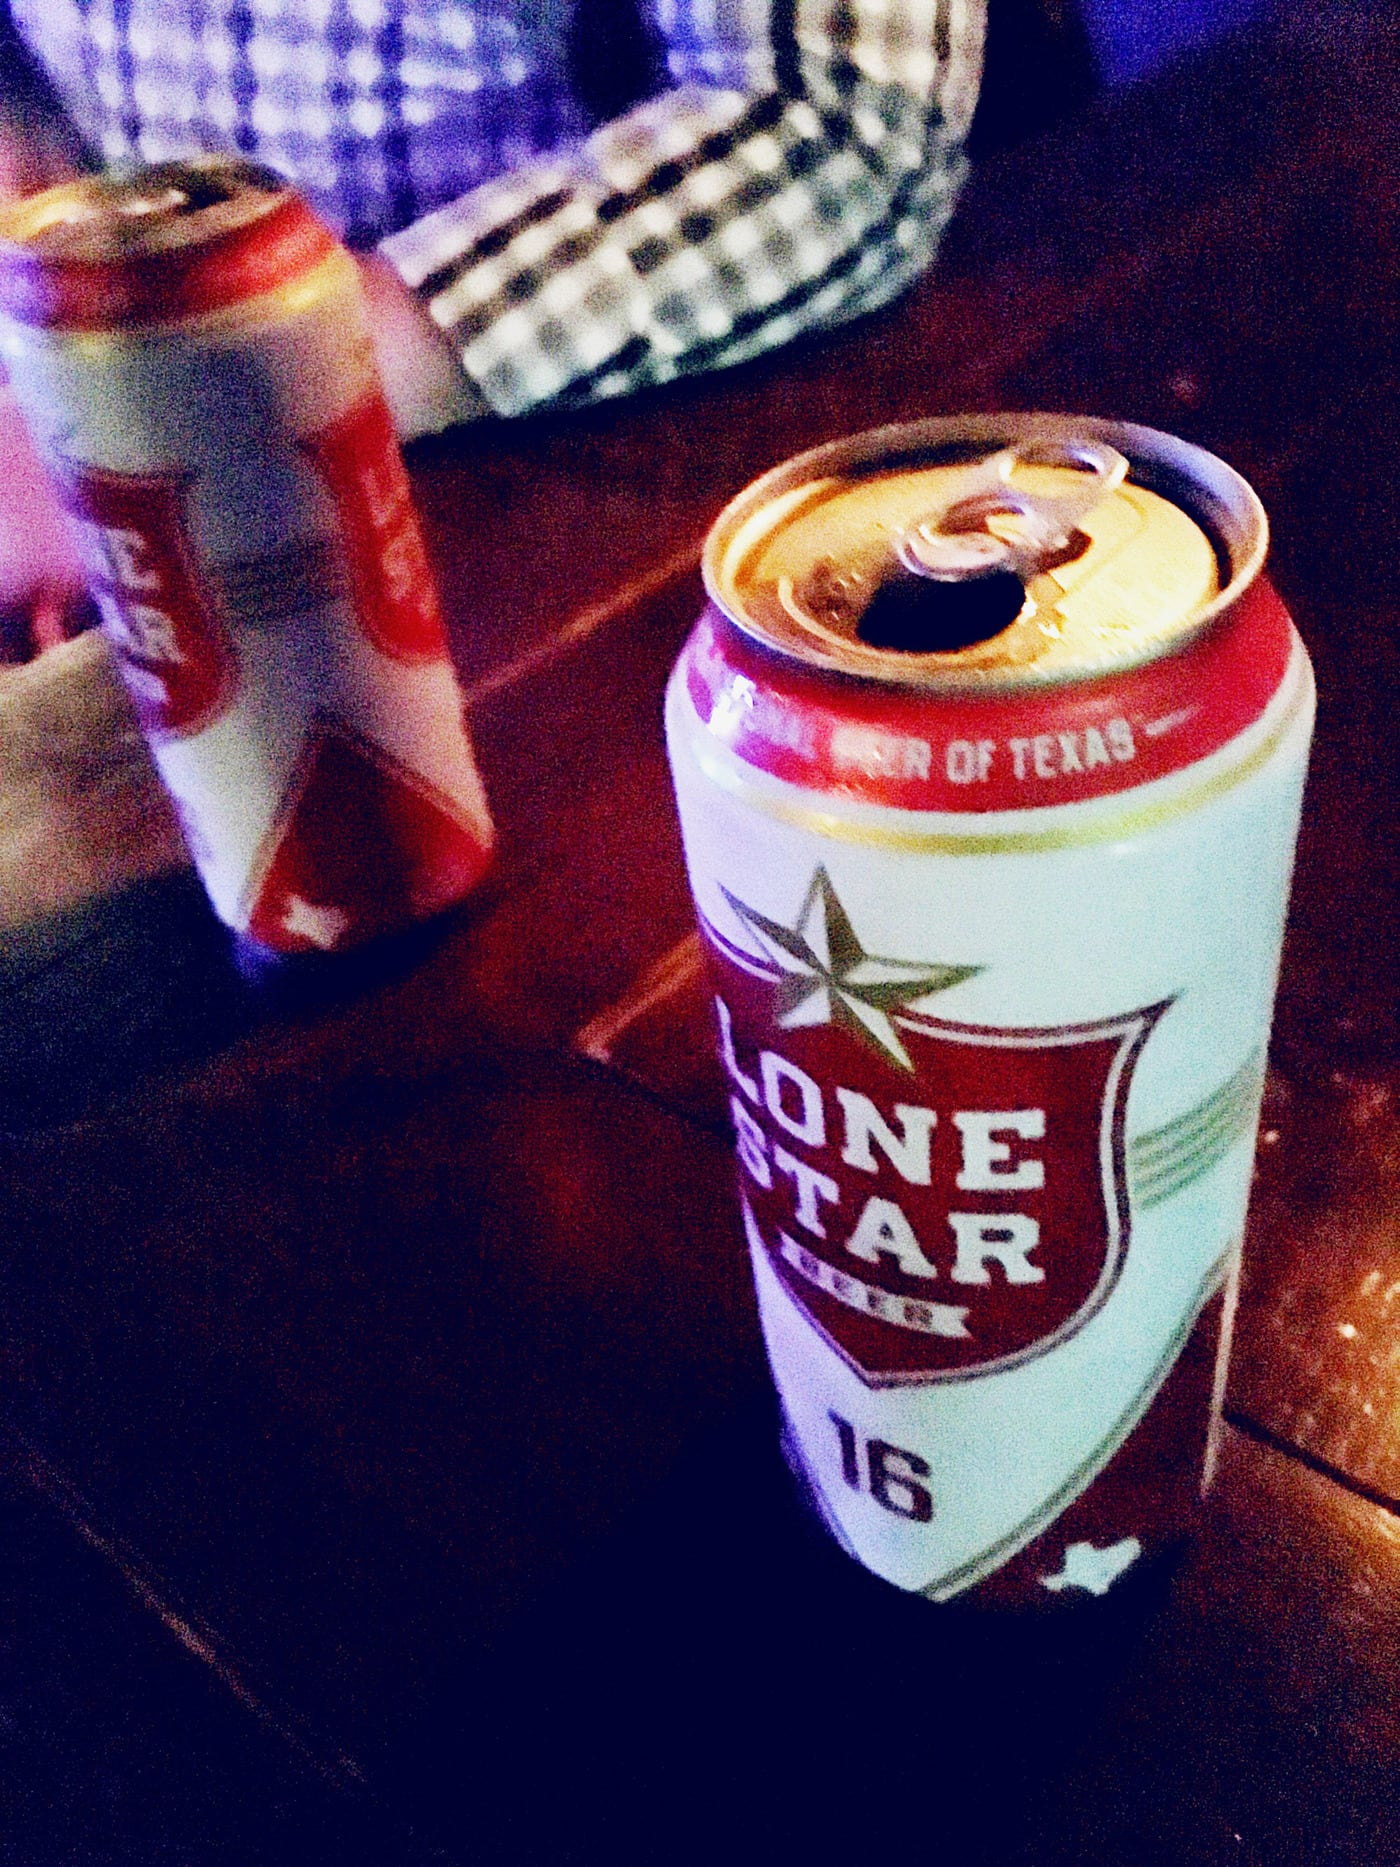 Lone Star Beer - the National Beer of Texas - at The Liberty in Austin, Texas.